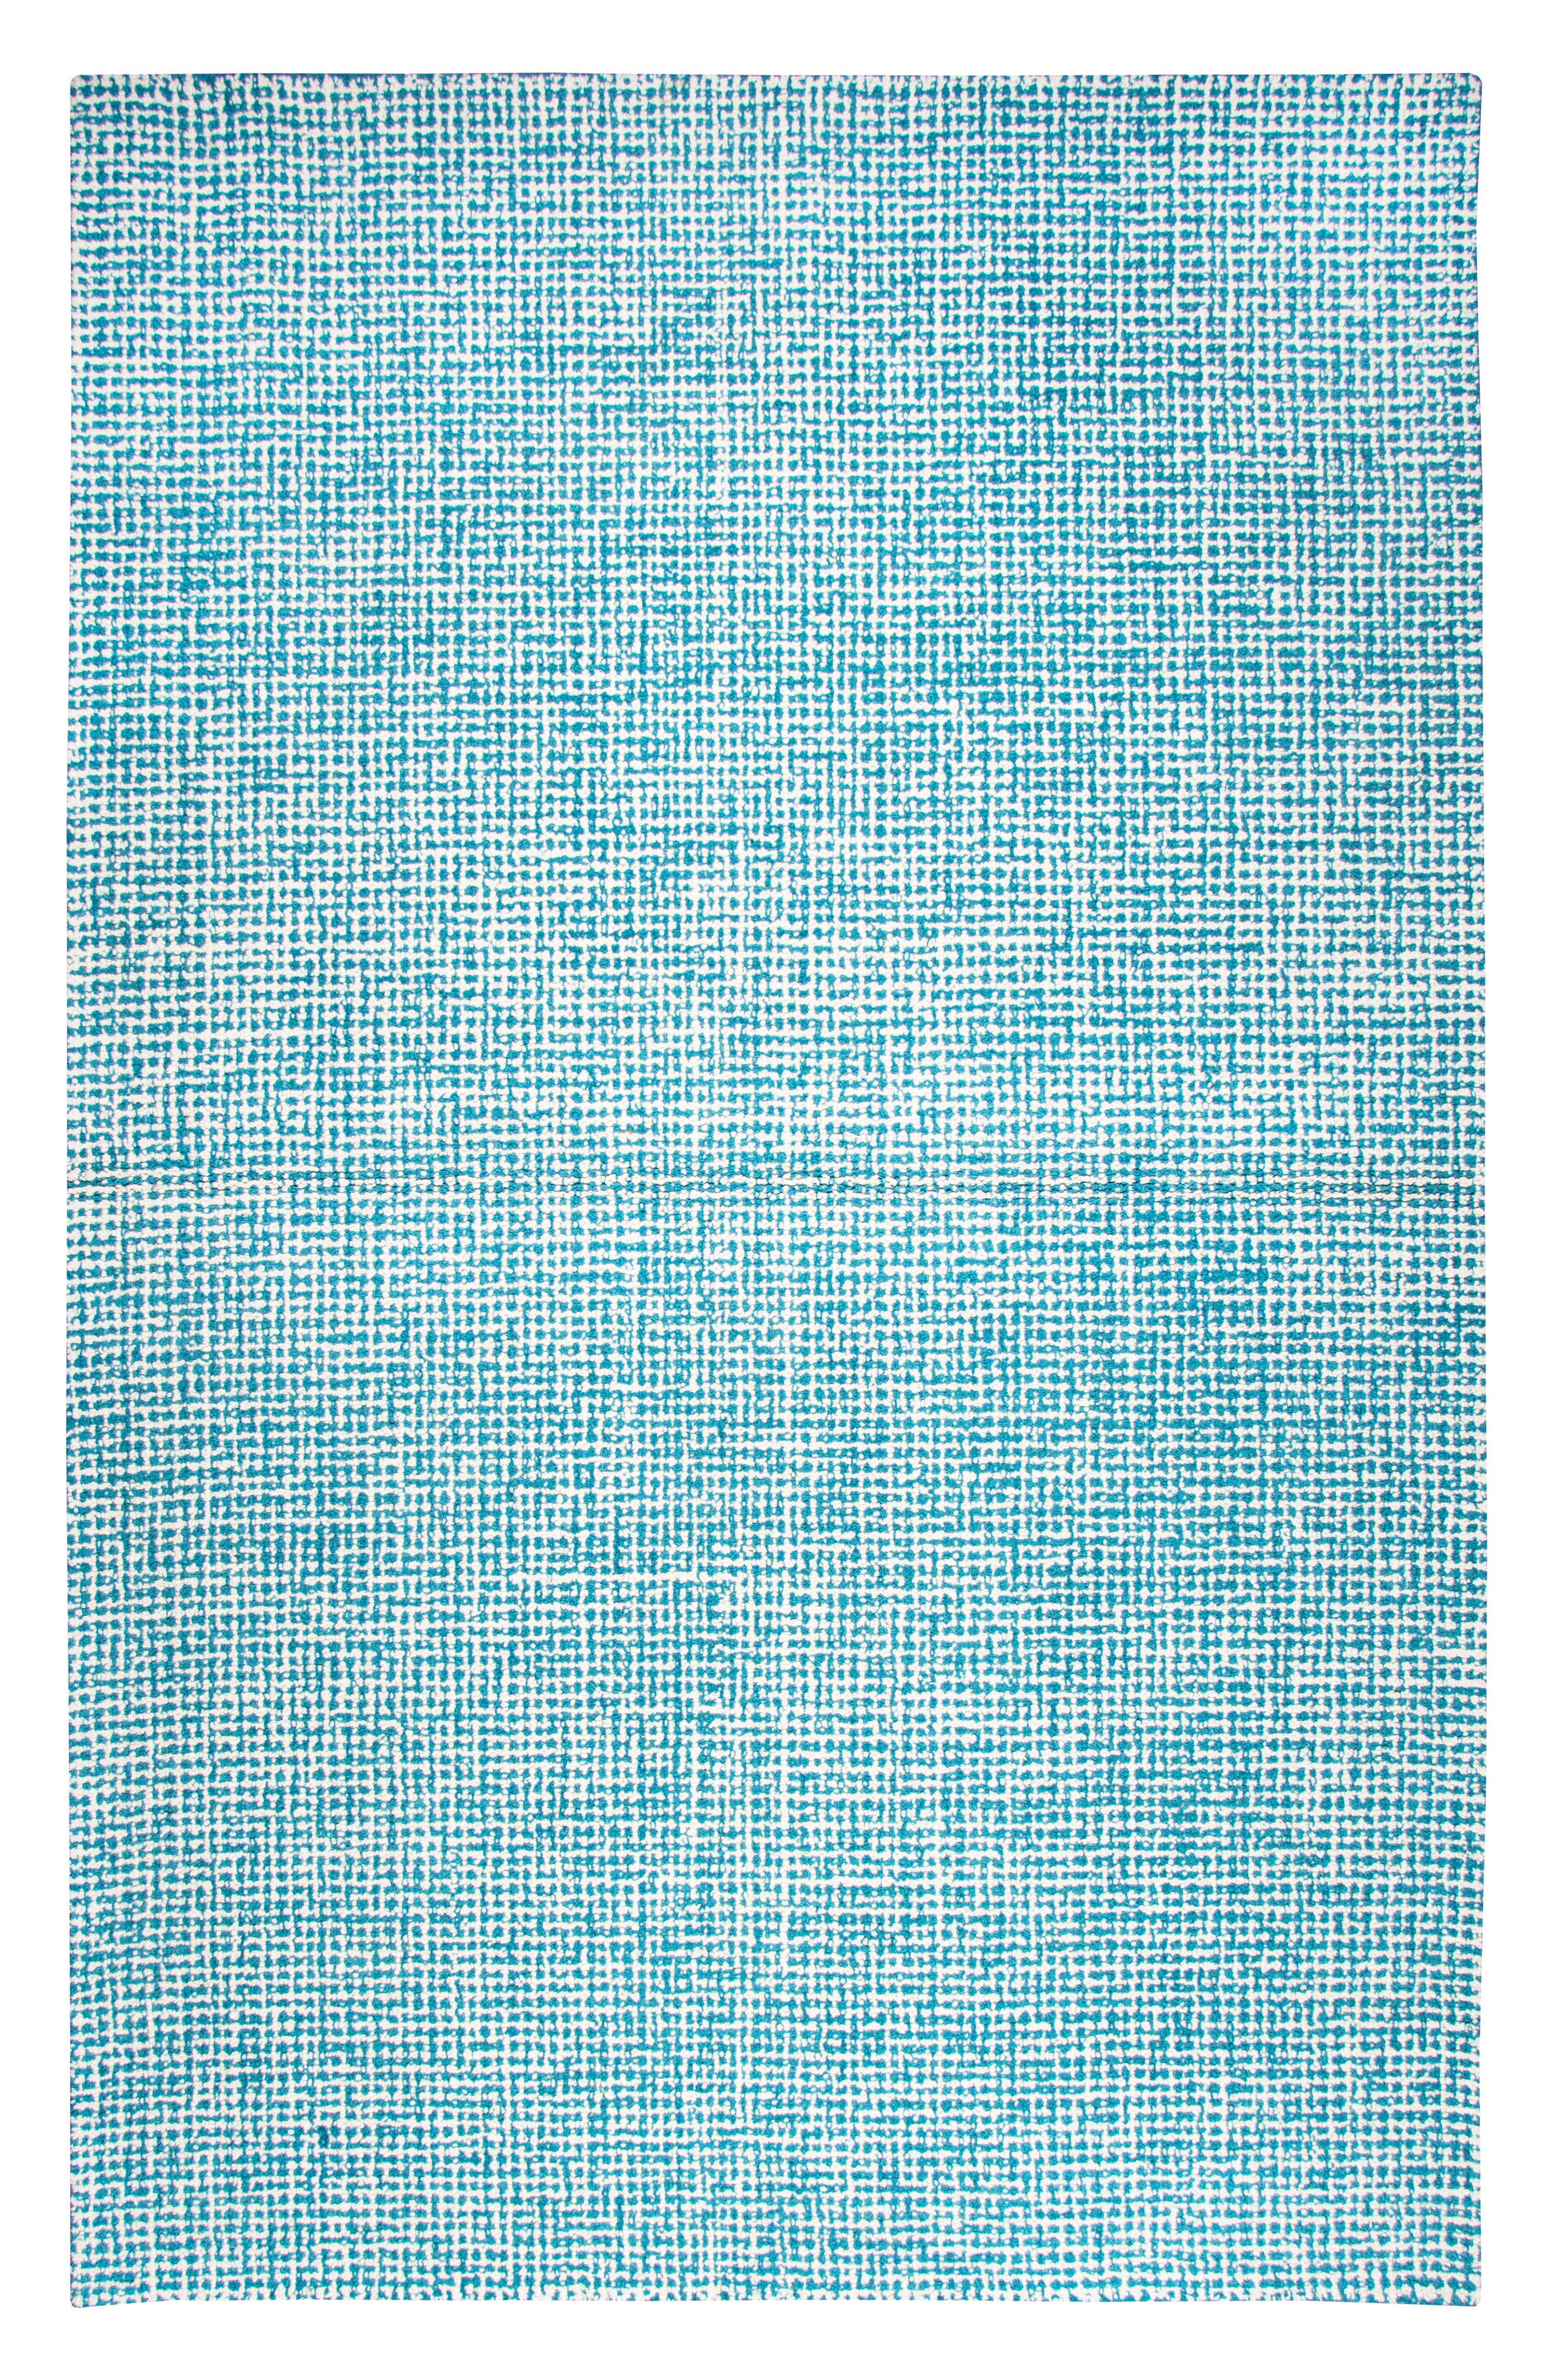 Alternate Image 1 Selected - Rizzy Home Brindleton Collection Grid Rug